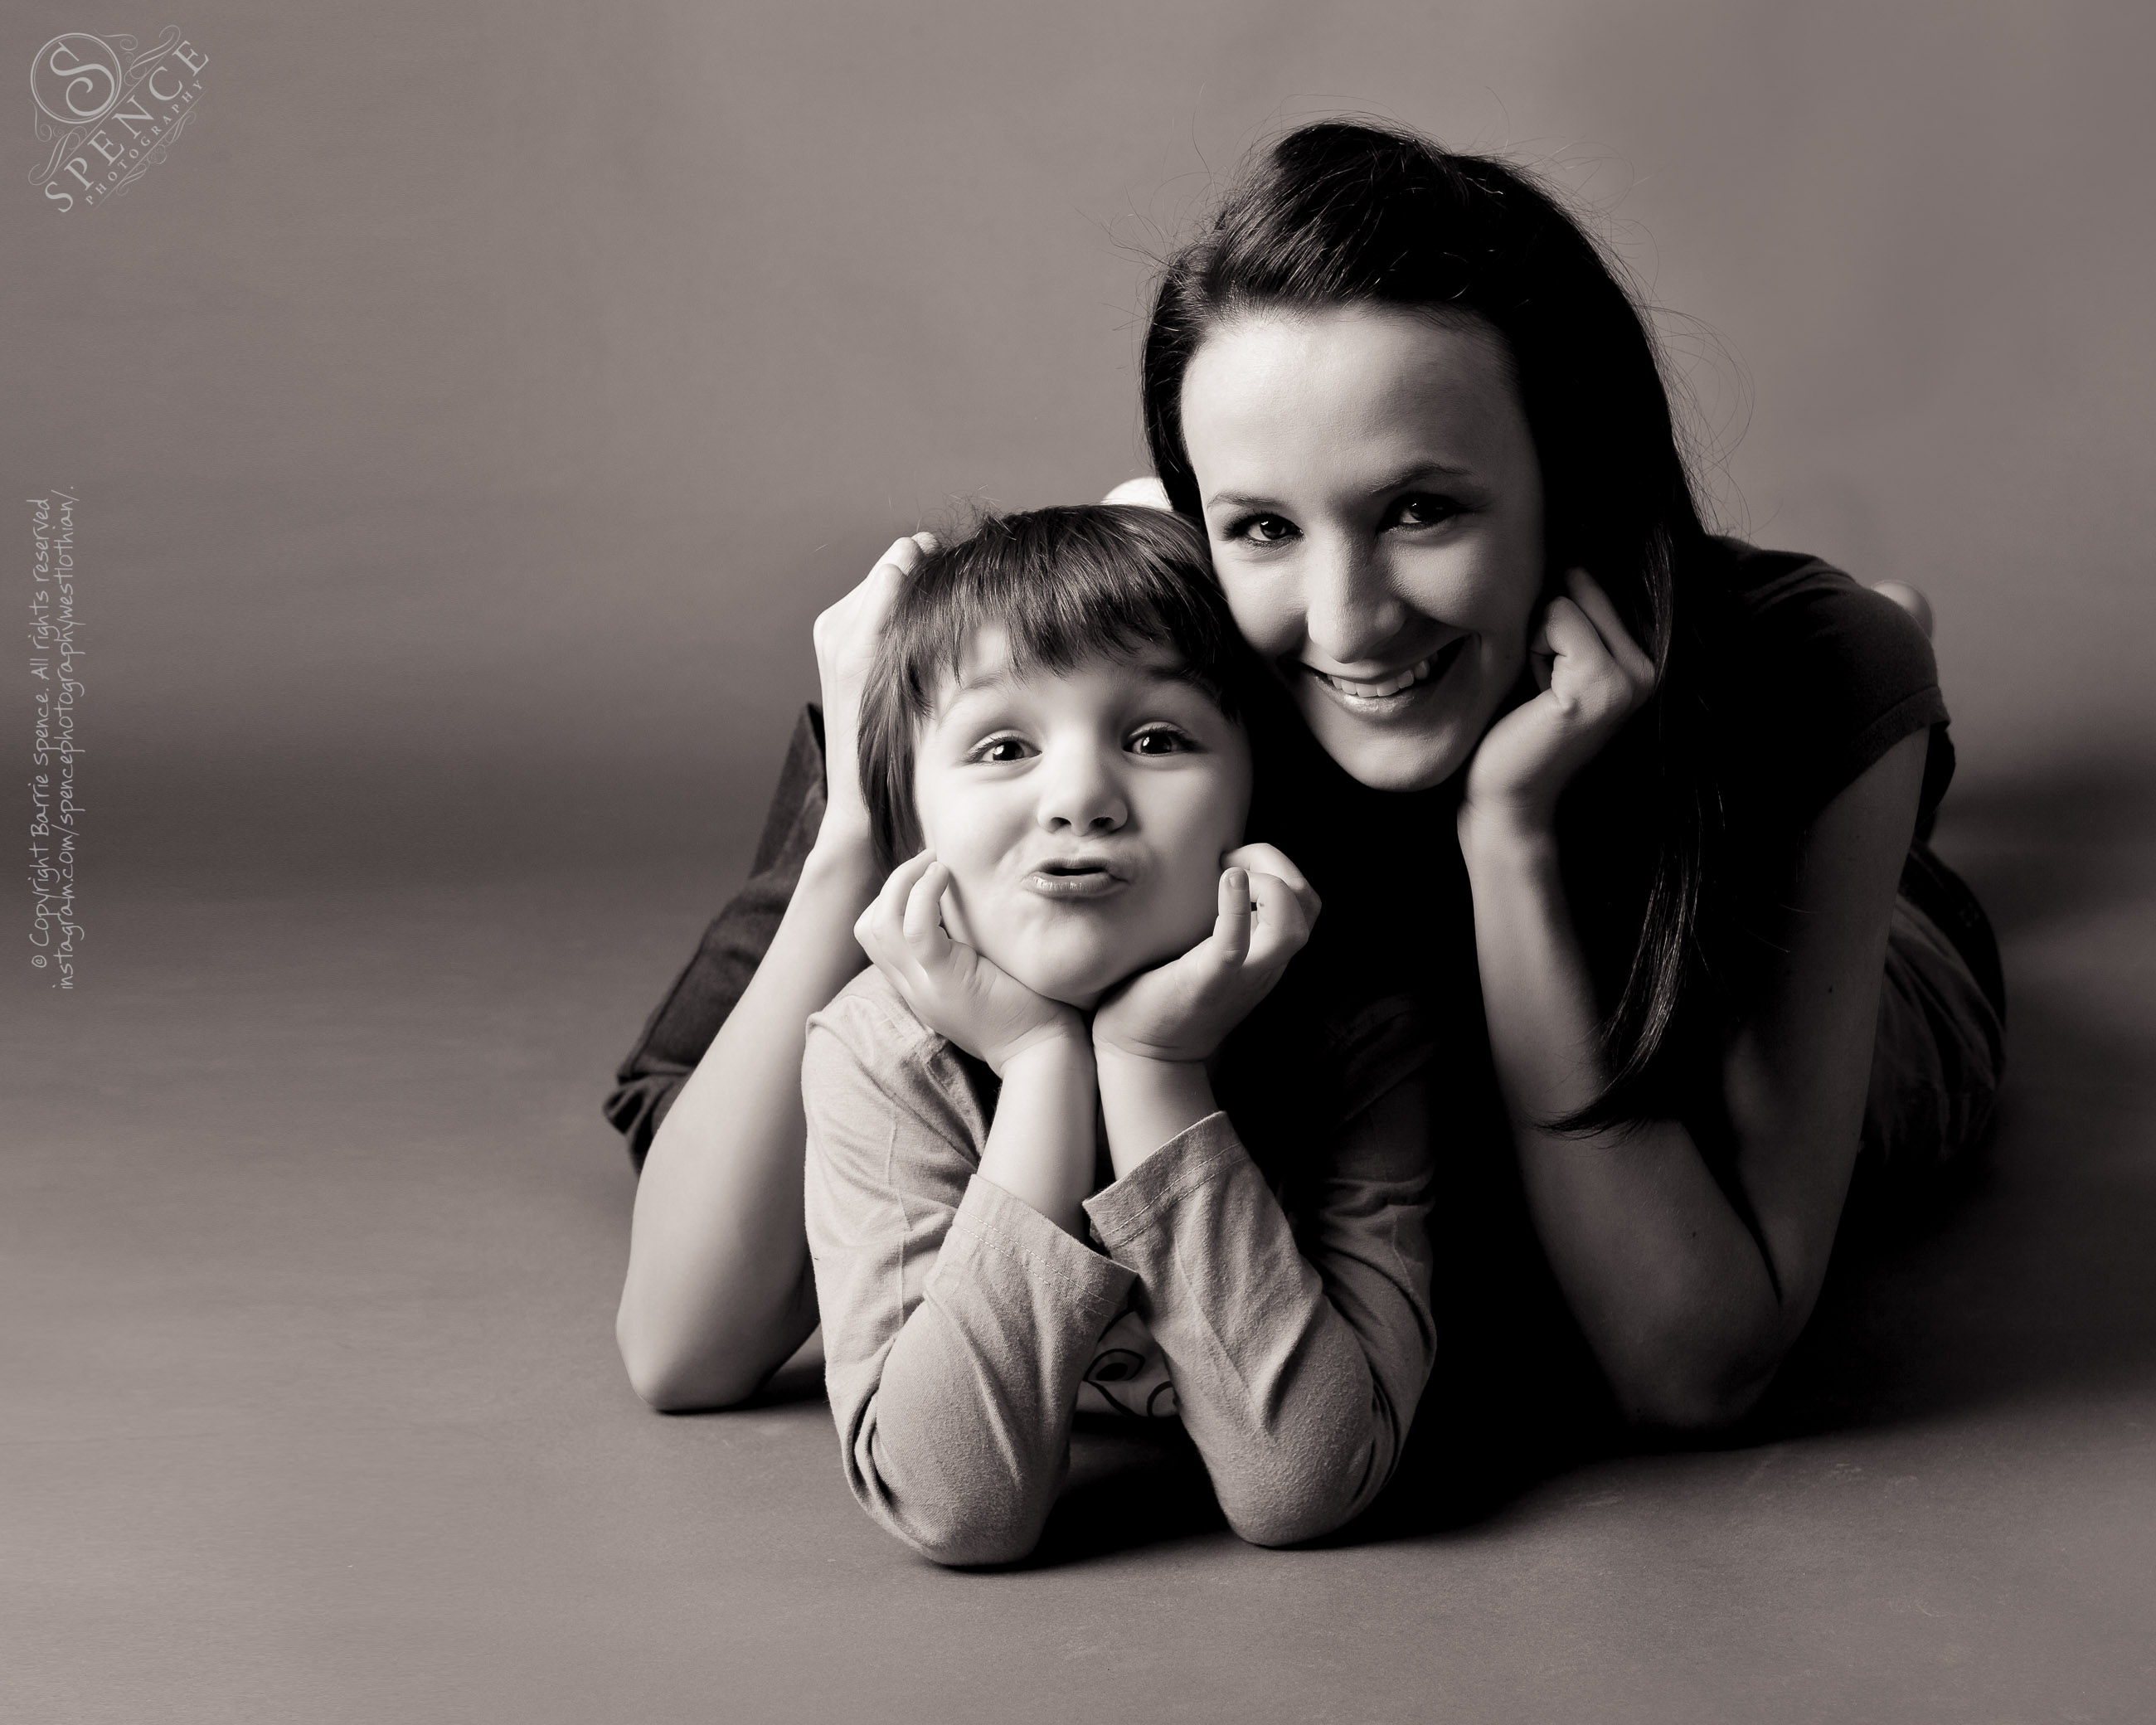 Fam­ily pho­to­graphy — Desiree and Kai (mother and son) taken in our Liv­ing­ston studio.